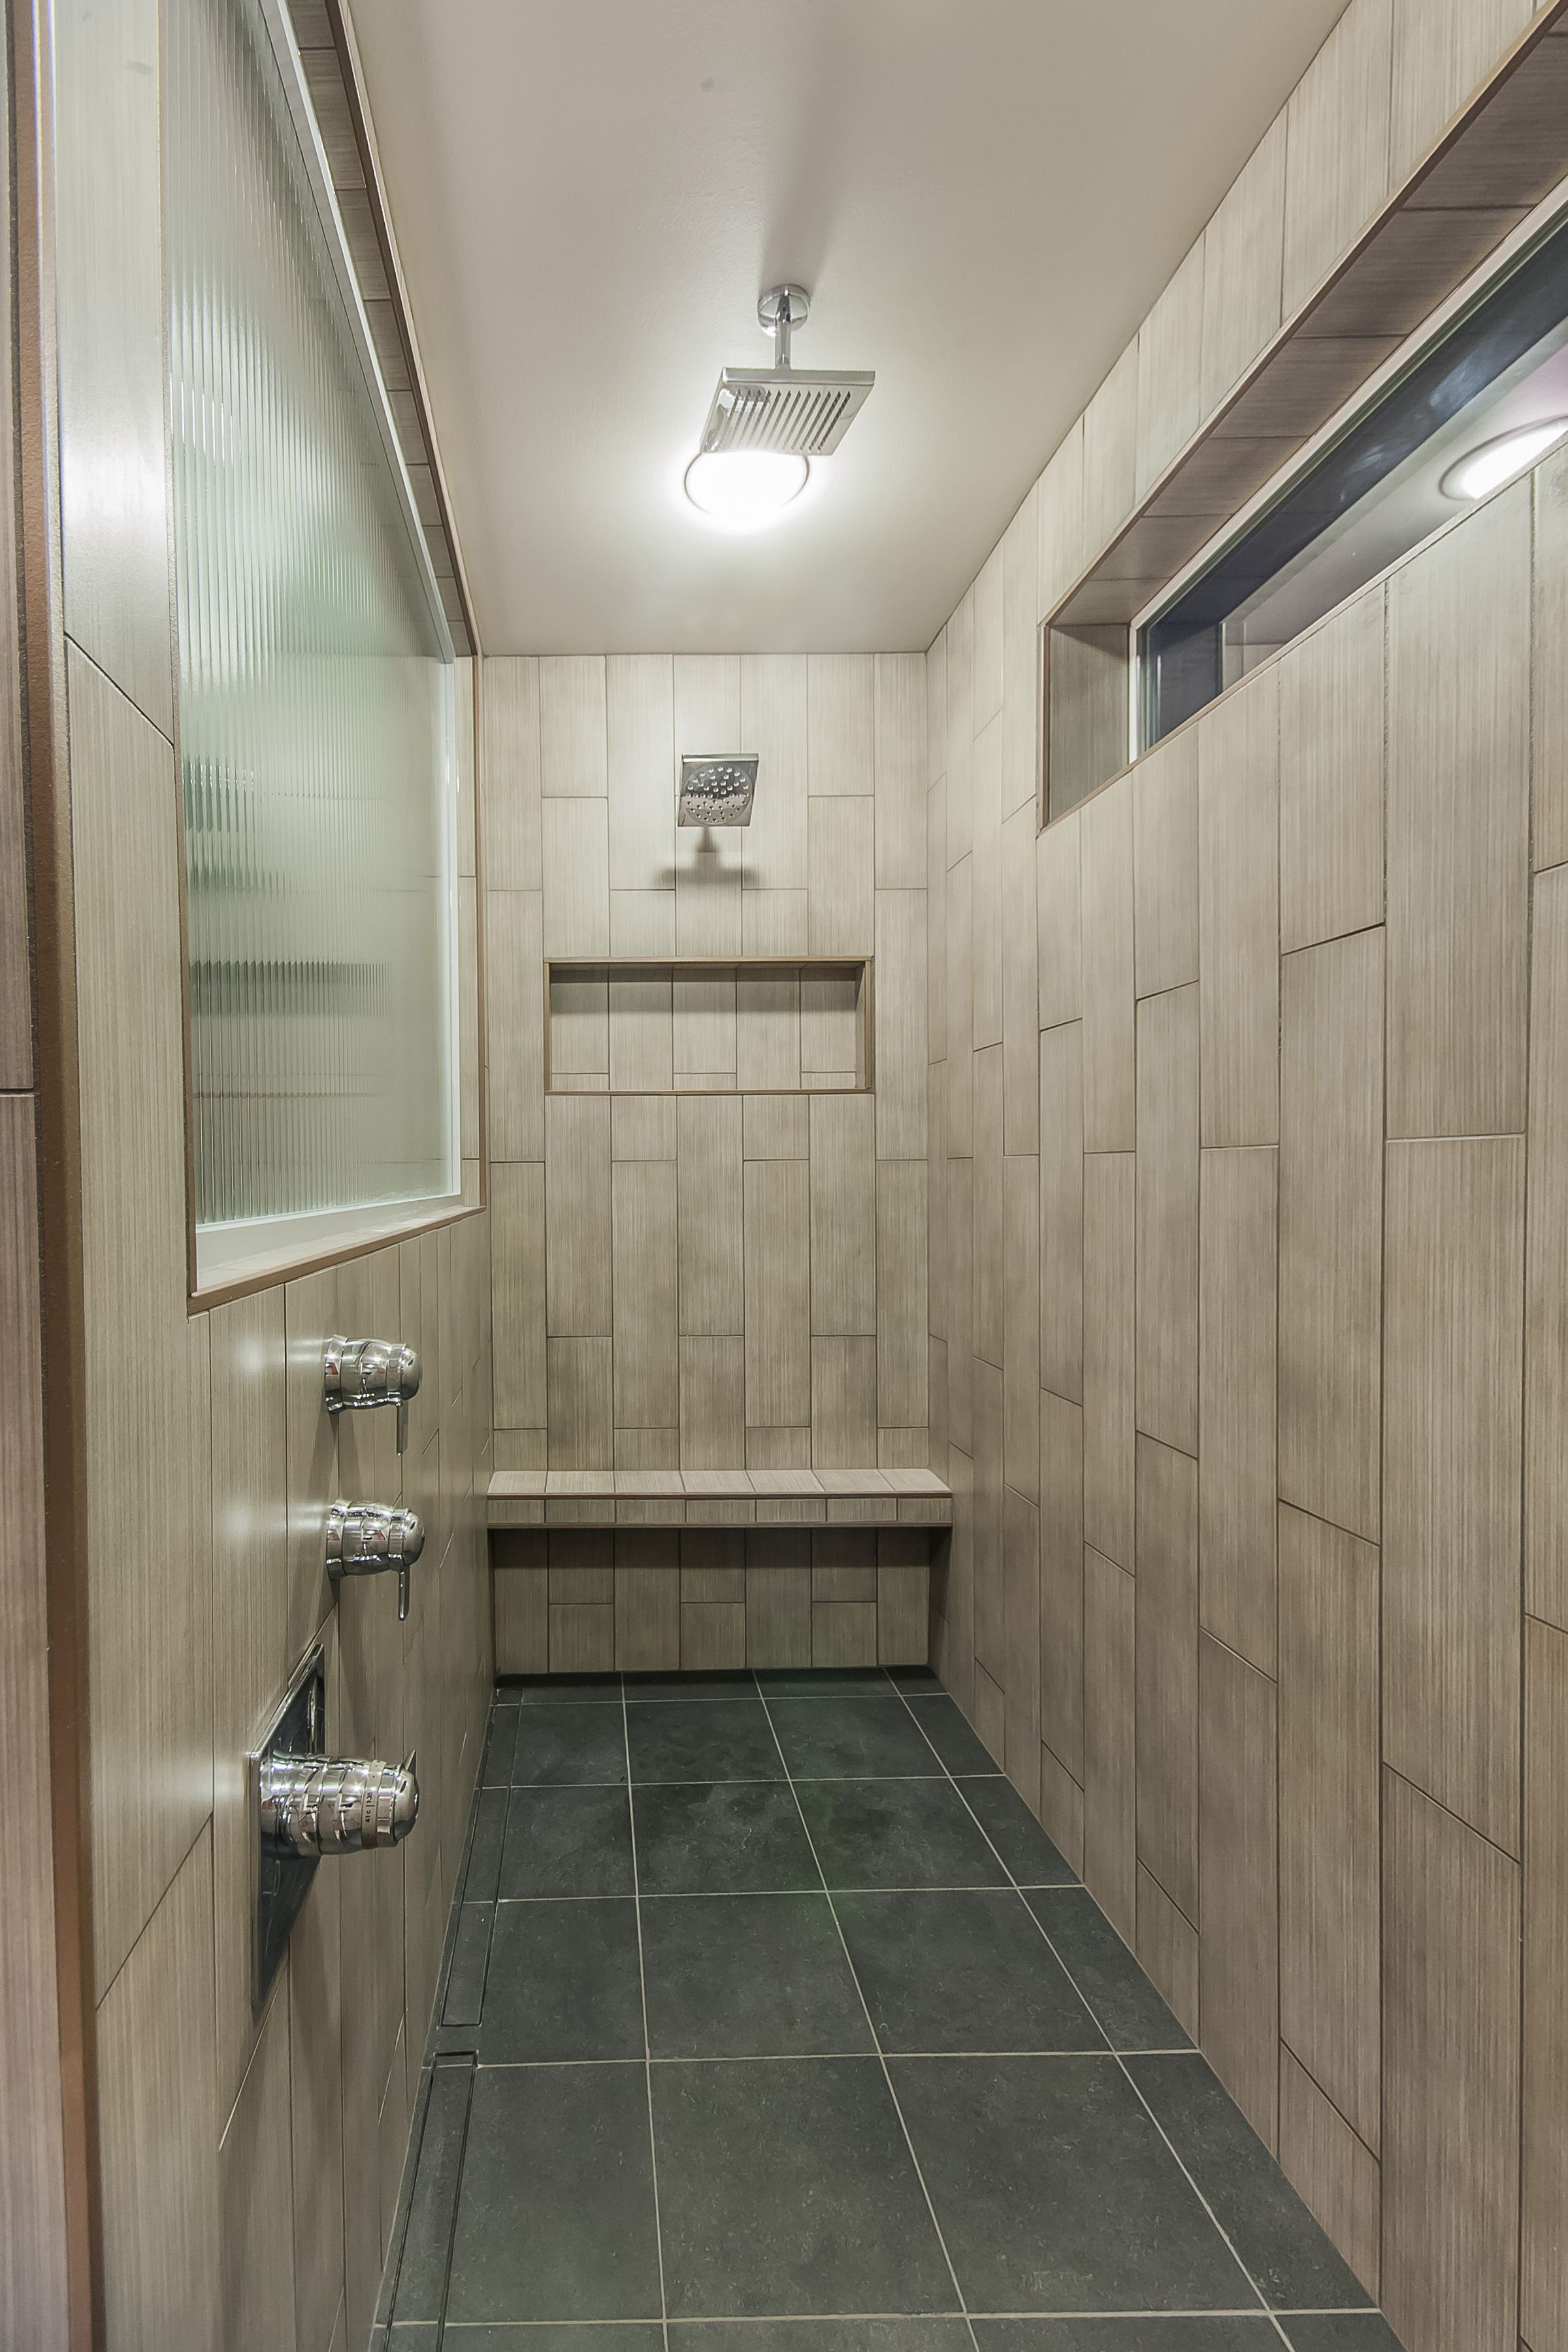 Vertical tile bathroom - 9 Long Shower 6x24 Vertical Tile Walls 12x24 Shower Pan With Schluter Linear Drain